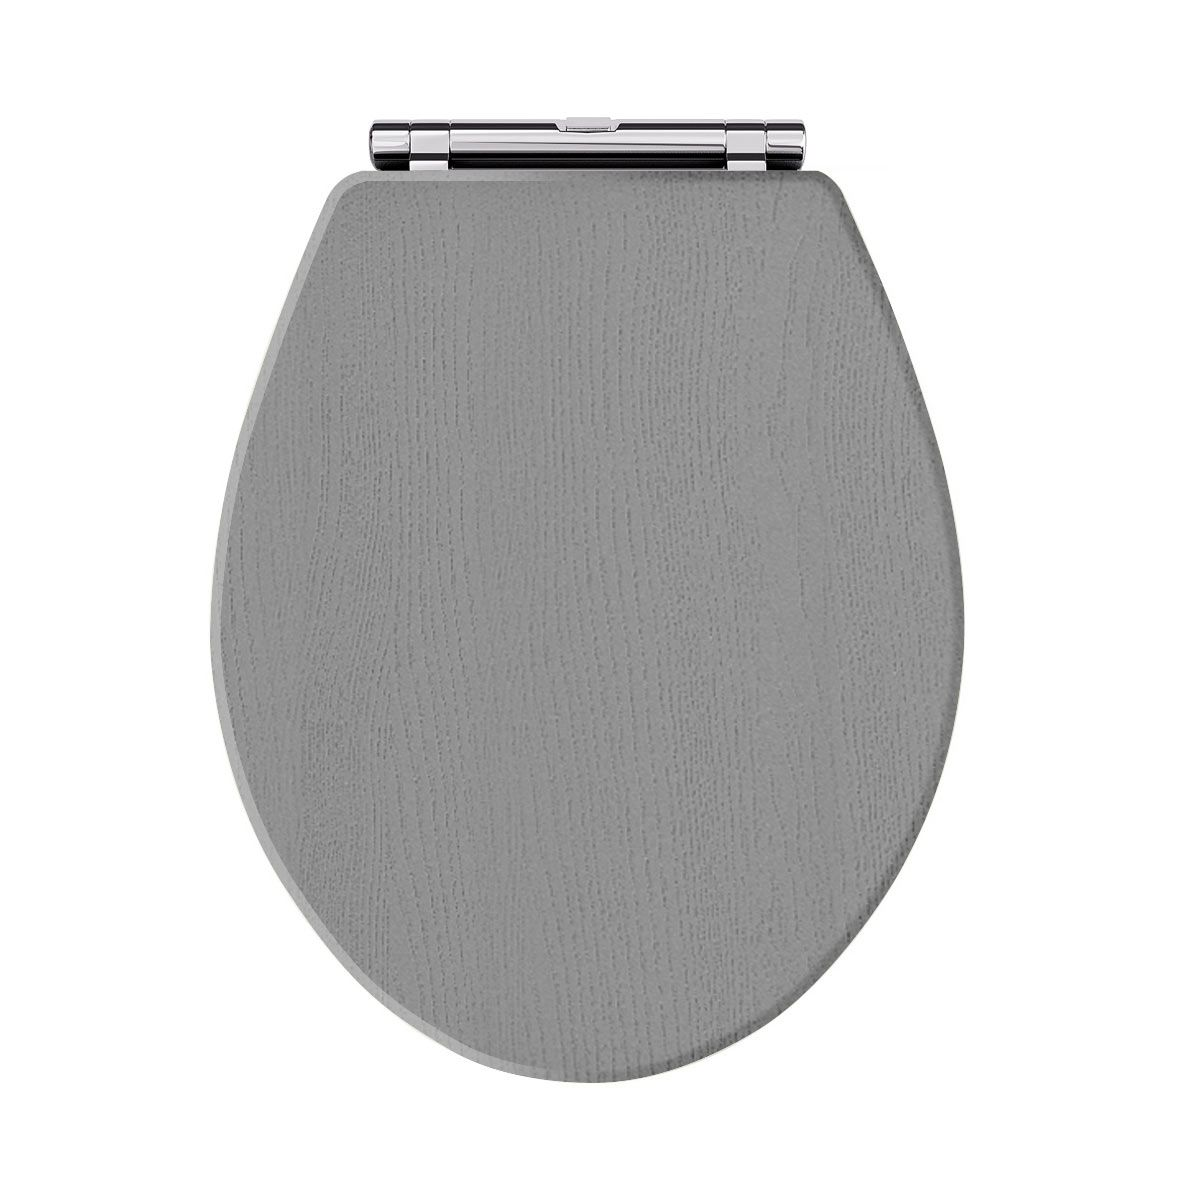 Richmond & Carlton Storm Grey Soft Close Toilet Seat